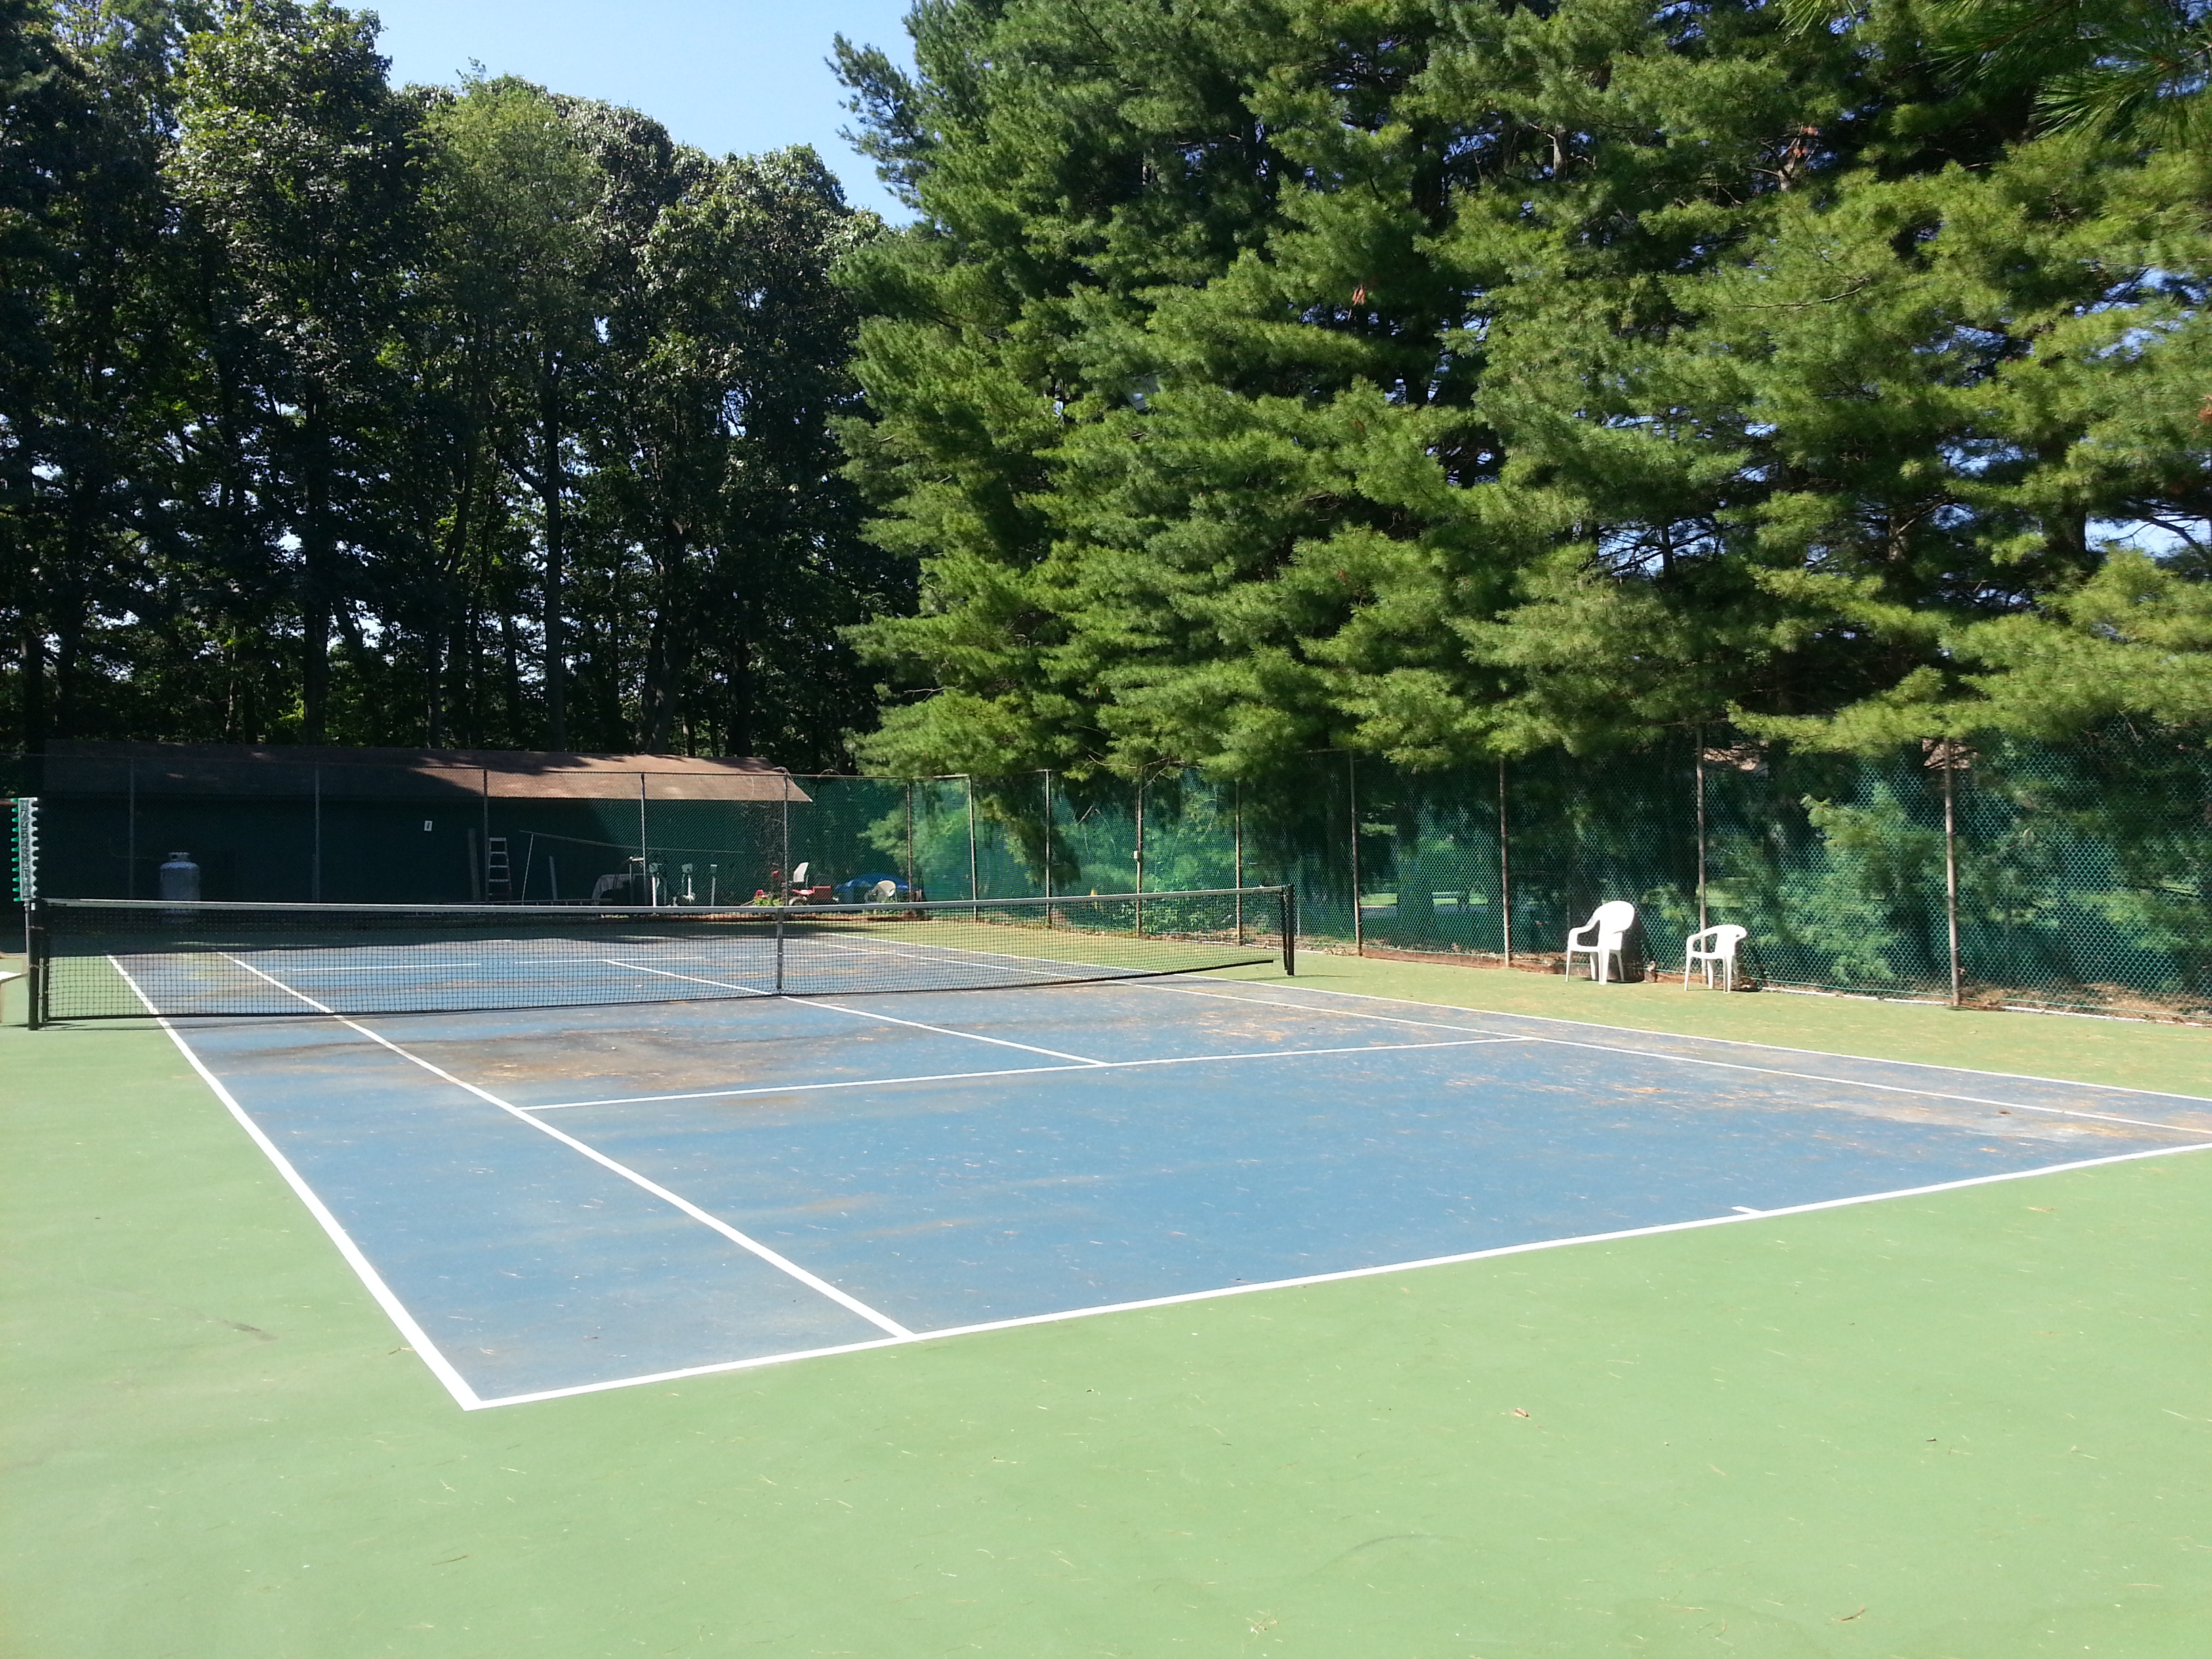 Shadow Lake Village has two tennis courts, pictured here, located near the clubhouse and pool.